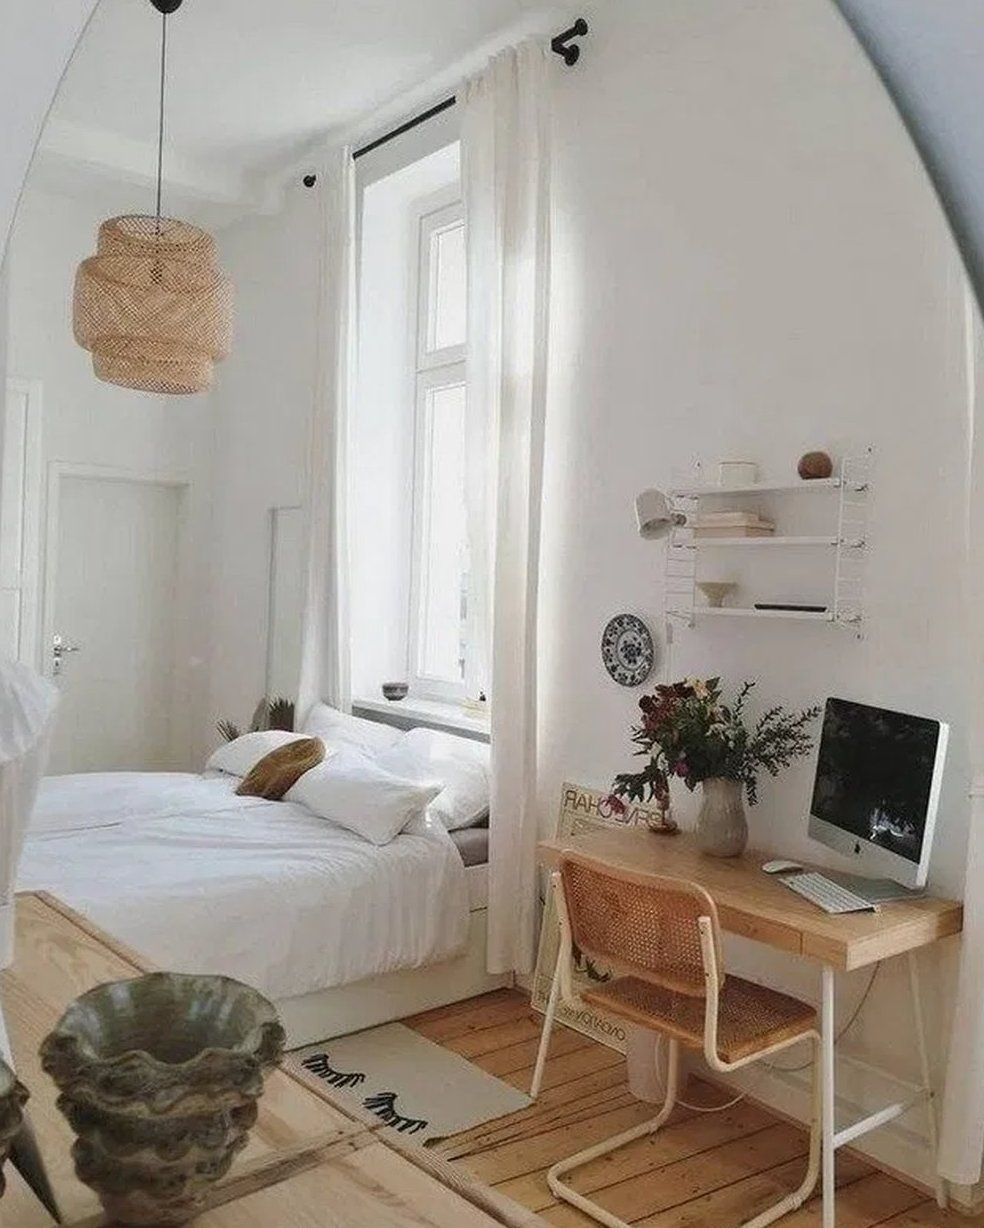 Home Design And Decor Ideas And Inspiration 19777 Home Ideas Homeideas I Loved Using Pinterest For Bedroom Interior New Bedroom Design Small Bedroom Decor